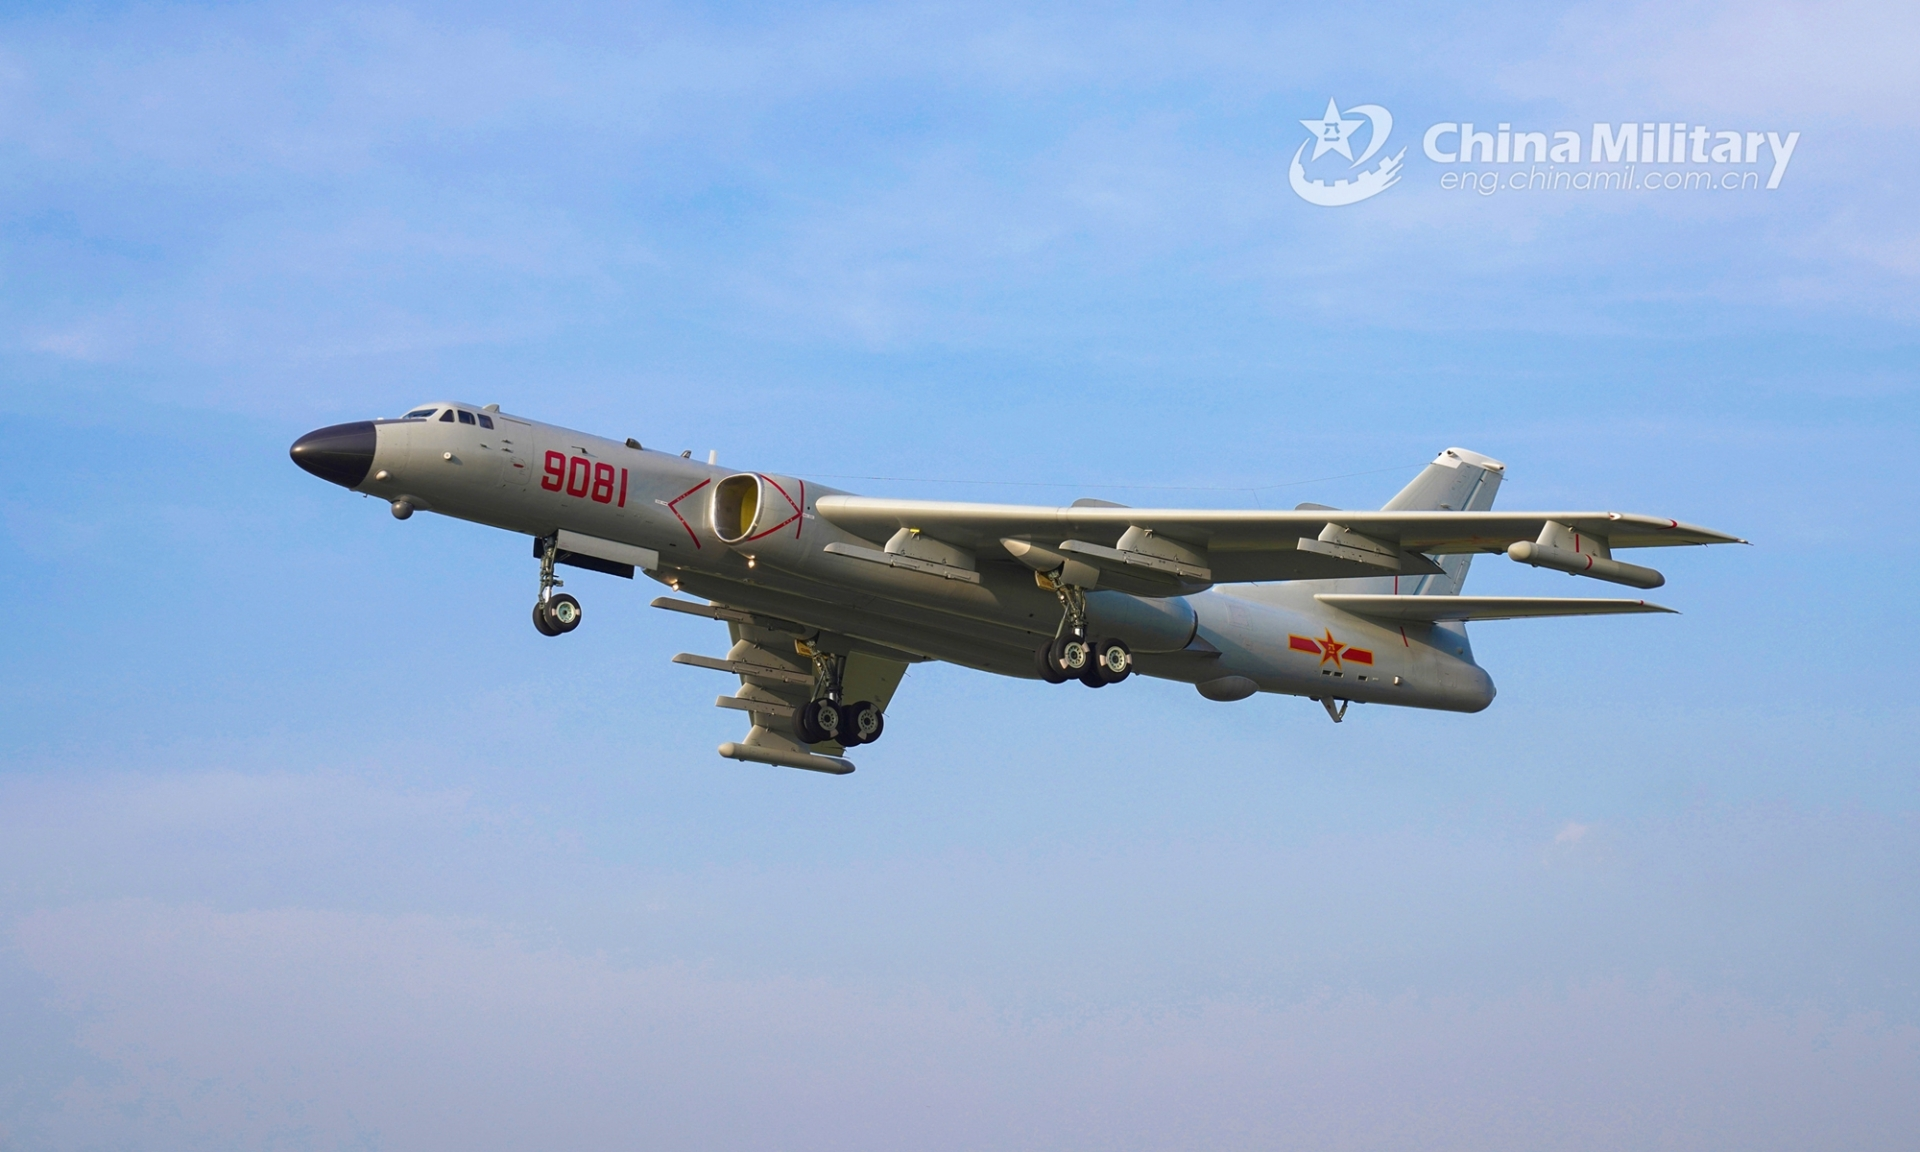 China again deploying bomber to Paracel archipelago and violating Vietnam's sovereignty